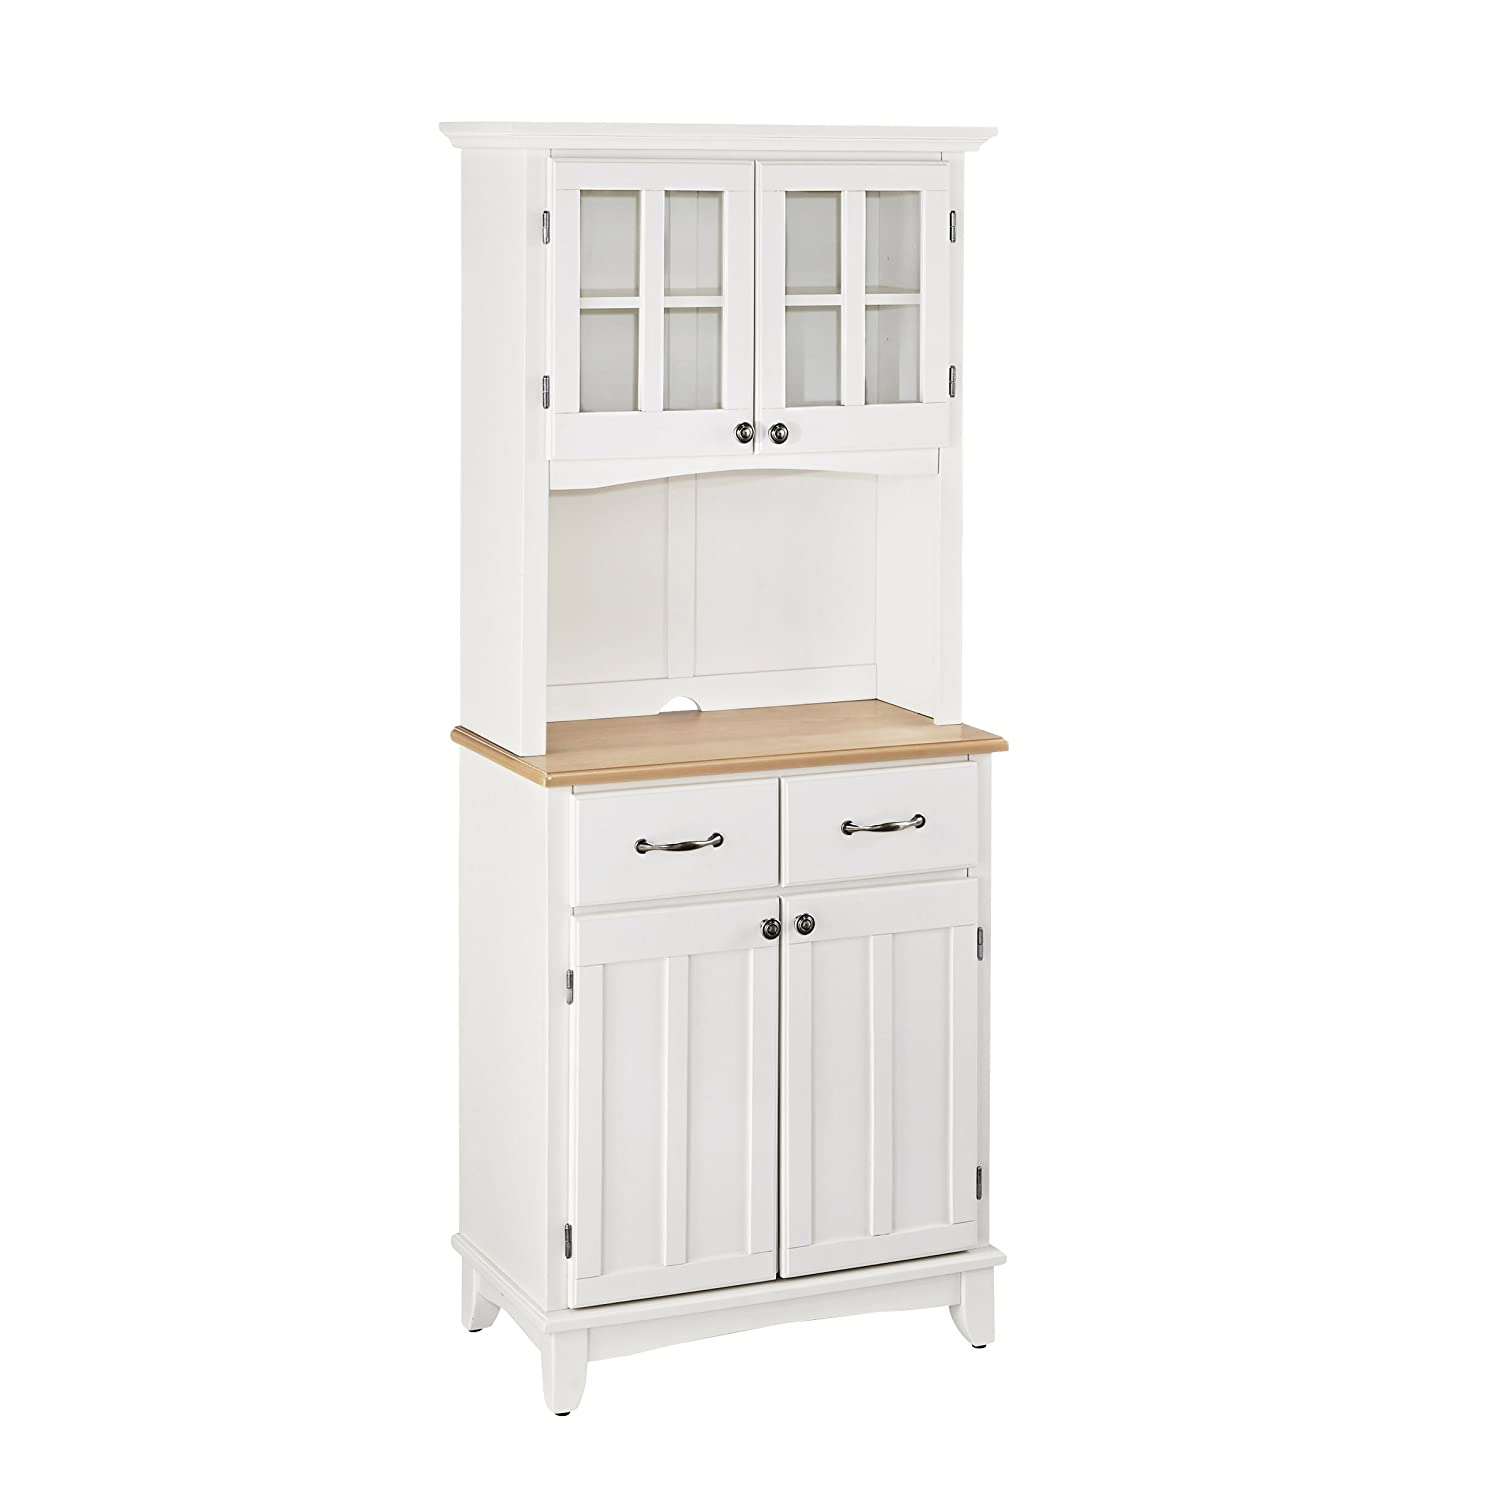 White buffet table furniture - Home Styles 5001 0021 12 Buffet Of Buffet 5001 Series Wood Top Buffet Server